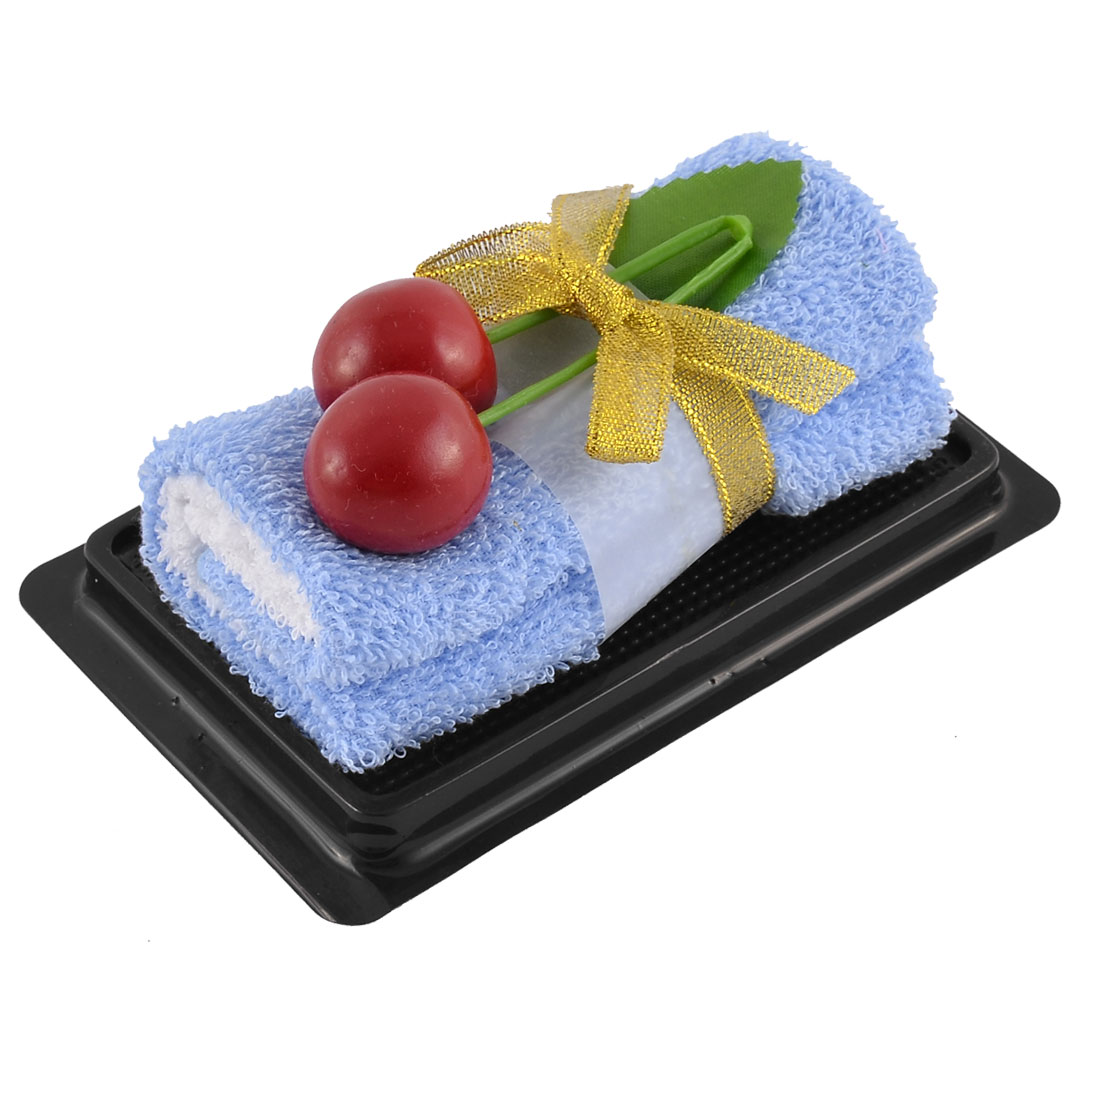 Simulated Cherry Leaf Detail Roll Cake Towel Facecloth Washcloth Decor Gift Blue